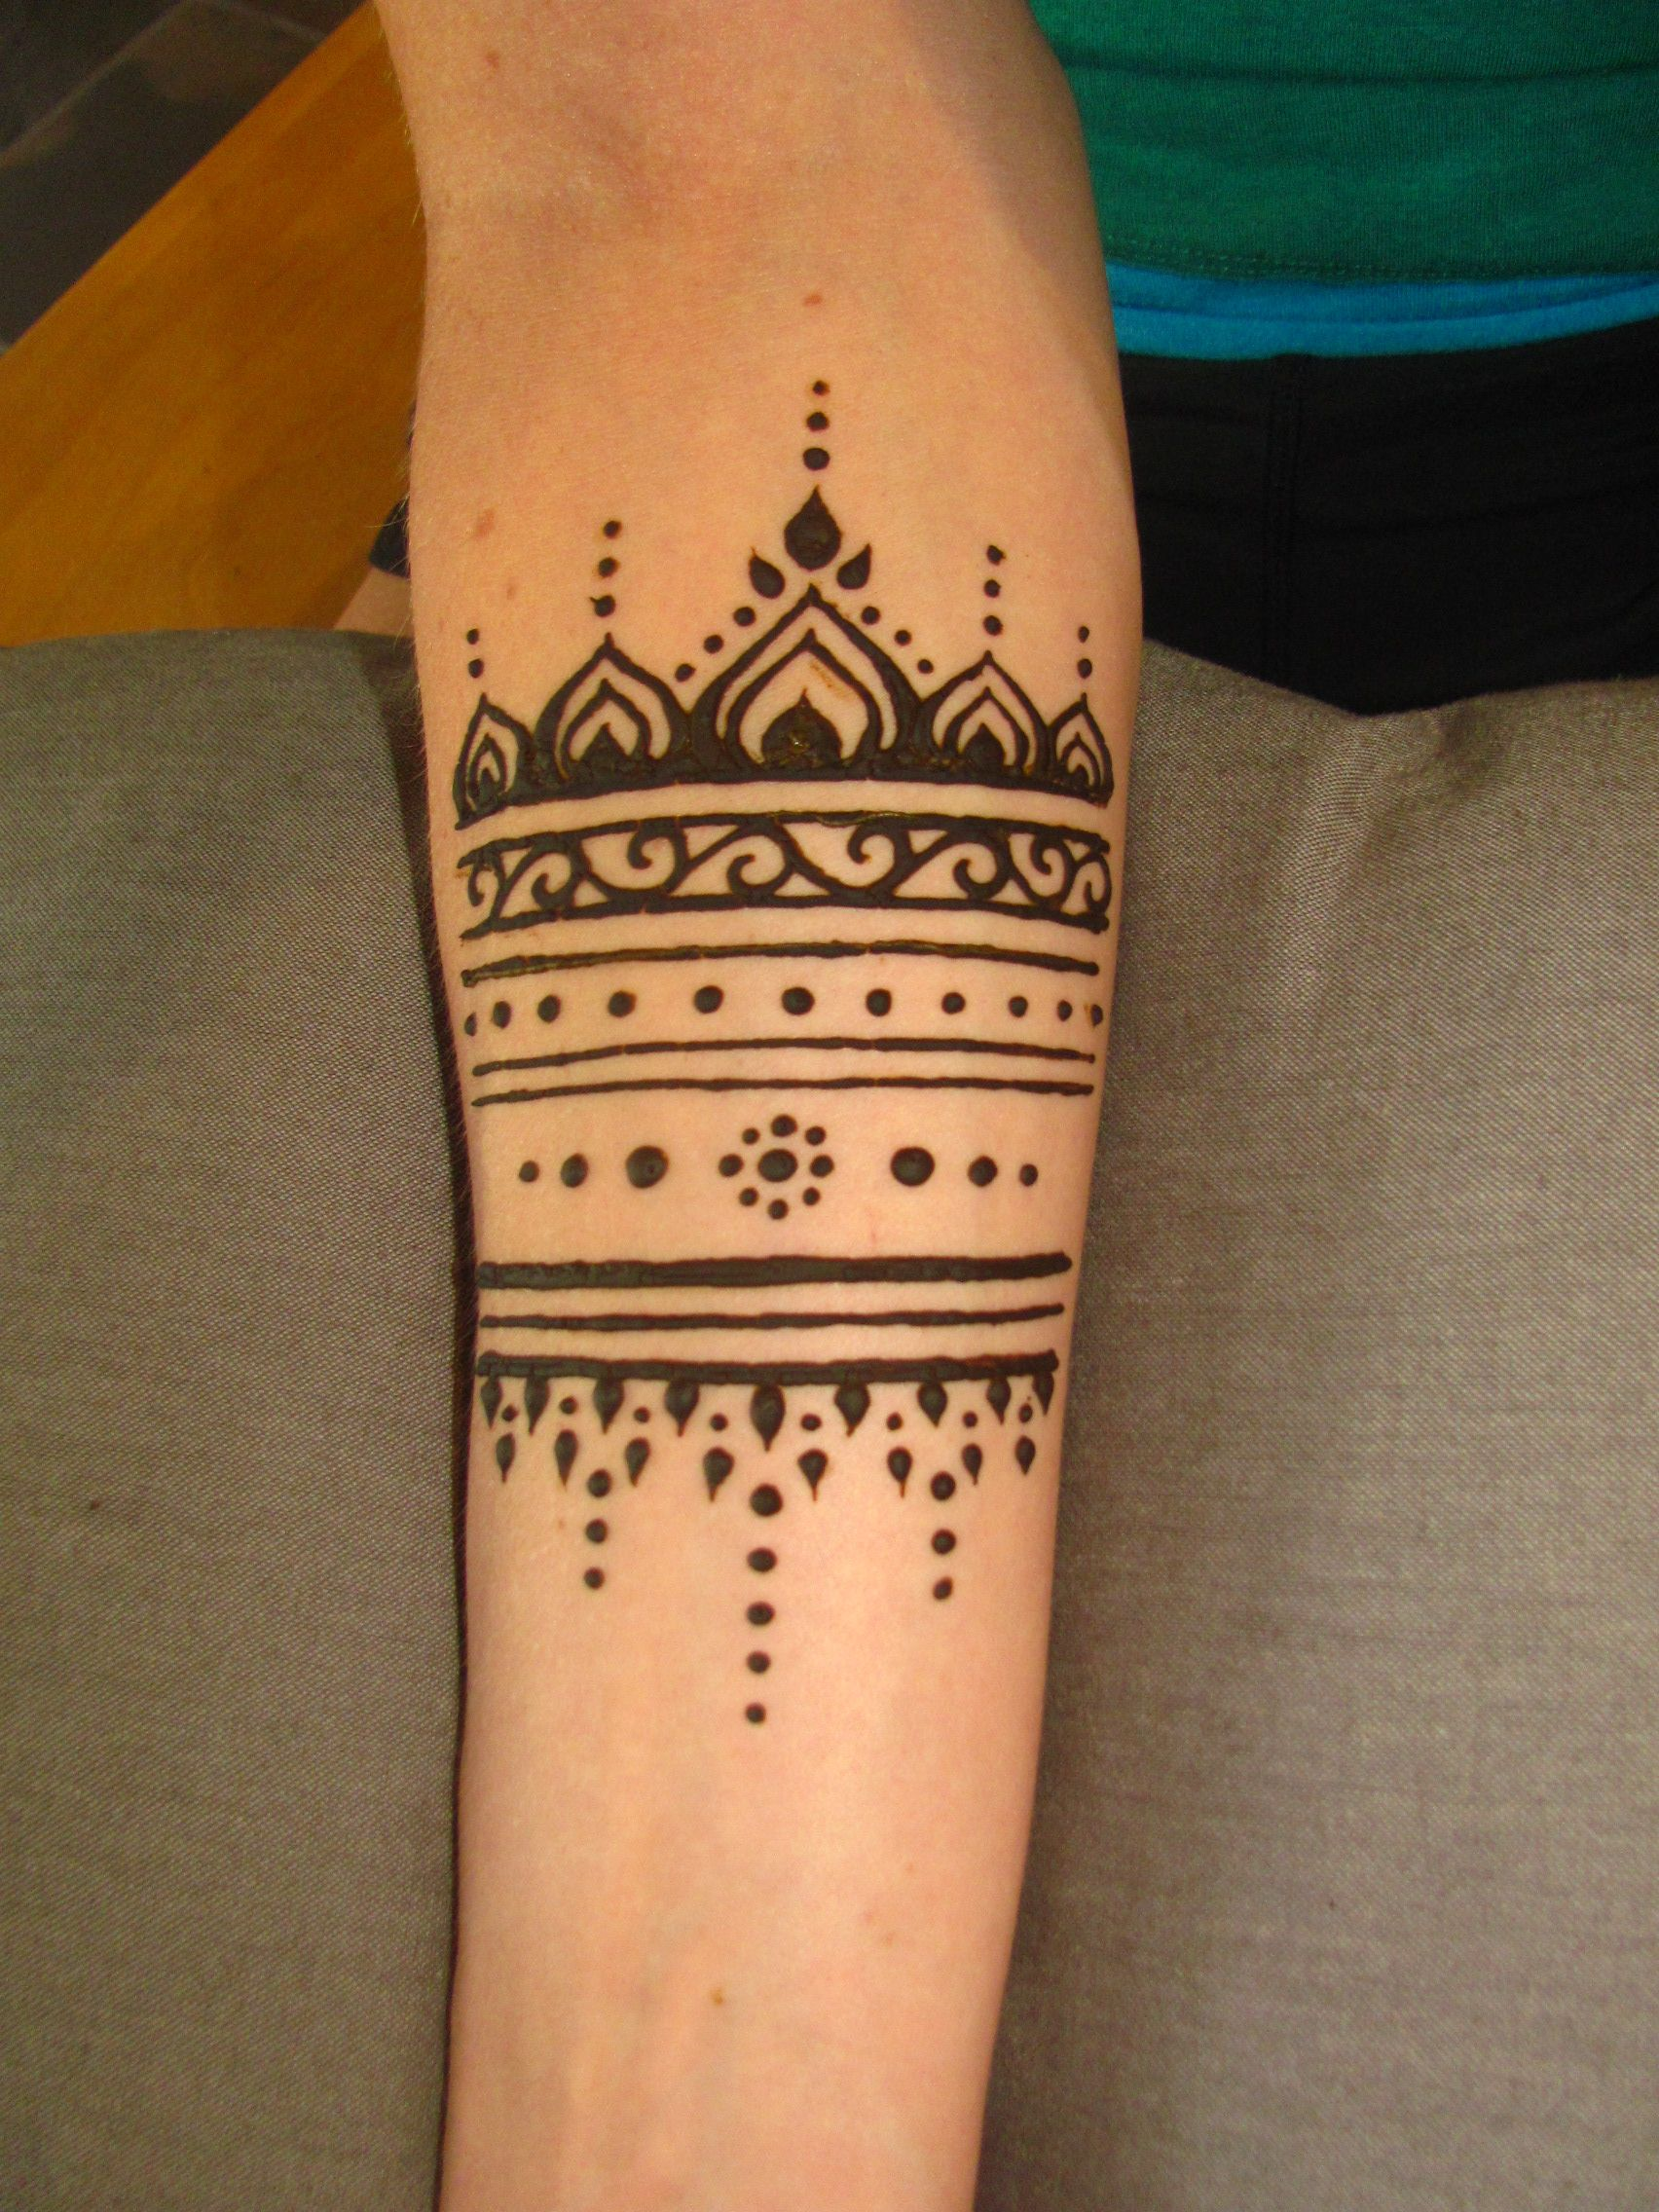 Henna Arm Tattoo: Love This Henna!